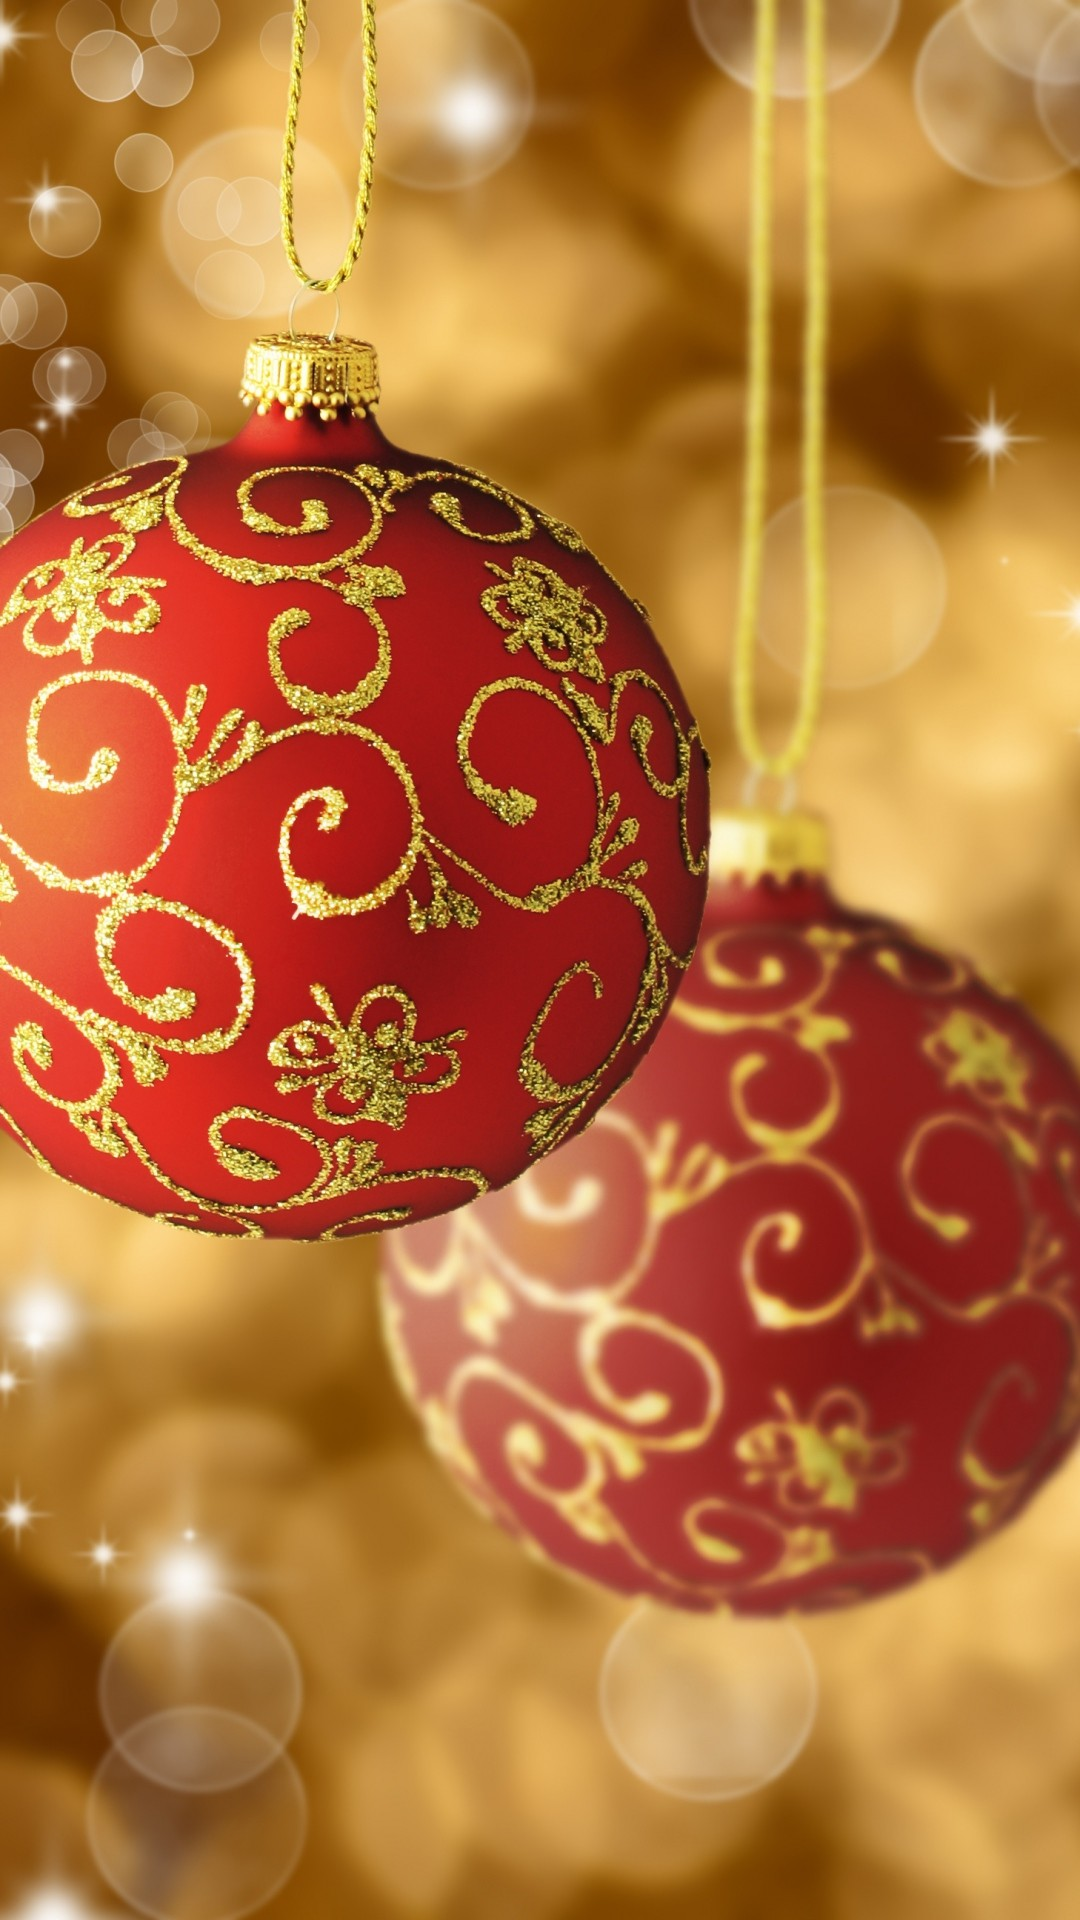 Red Gold Christmas Balls Tree Decorations Android Wallpaper …